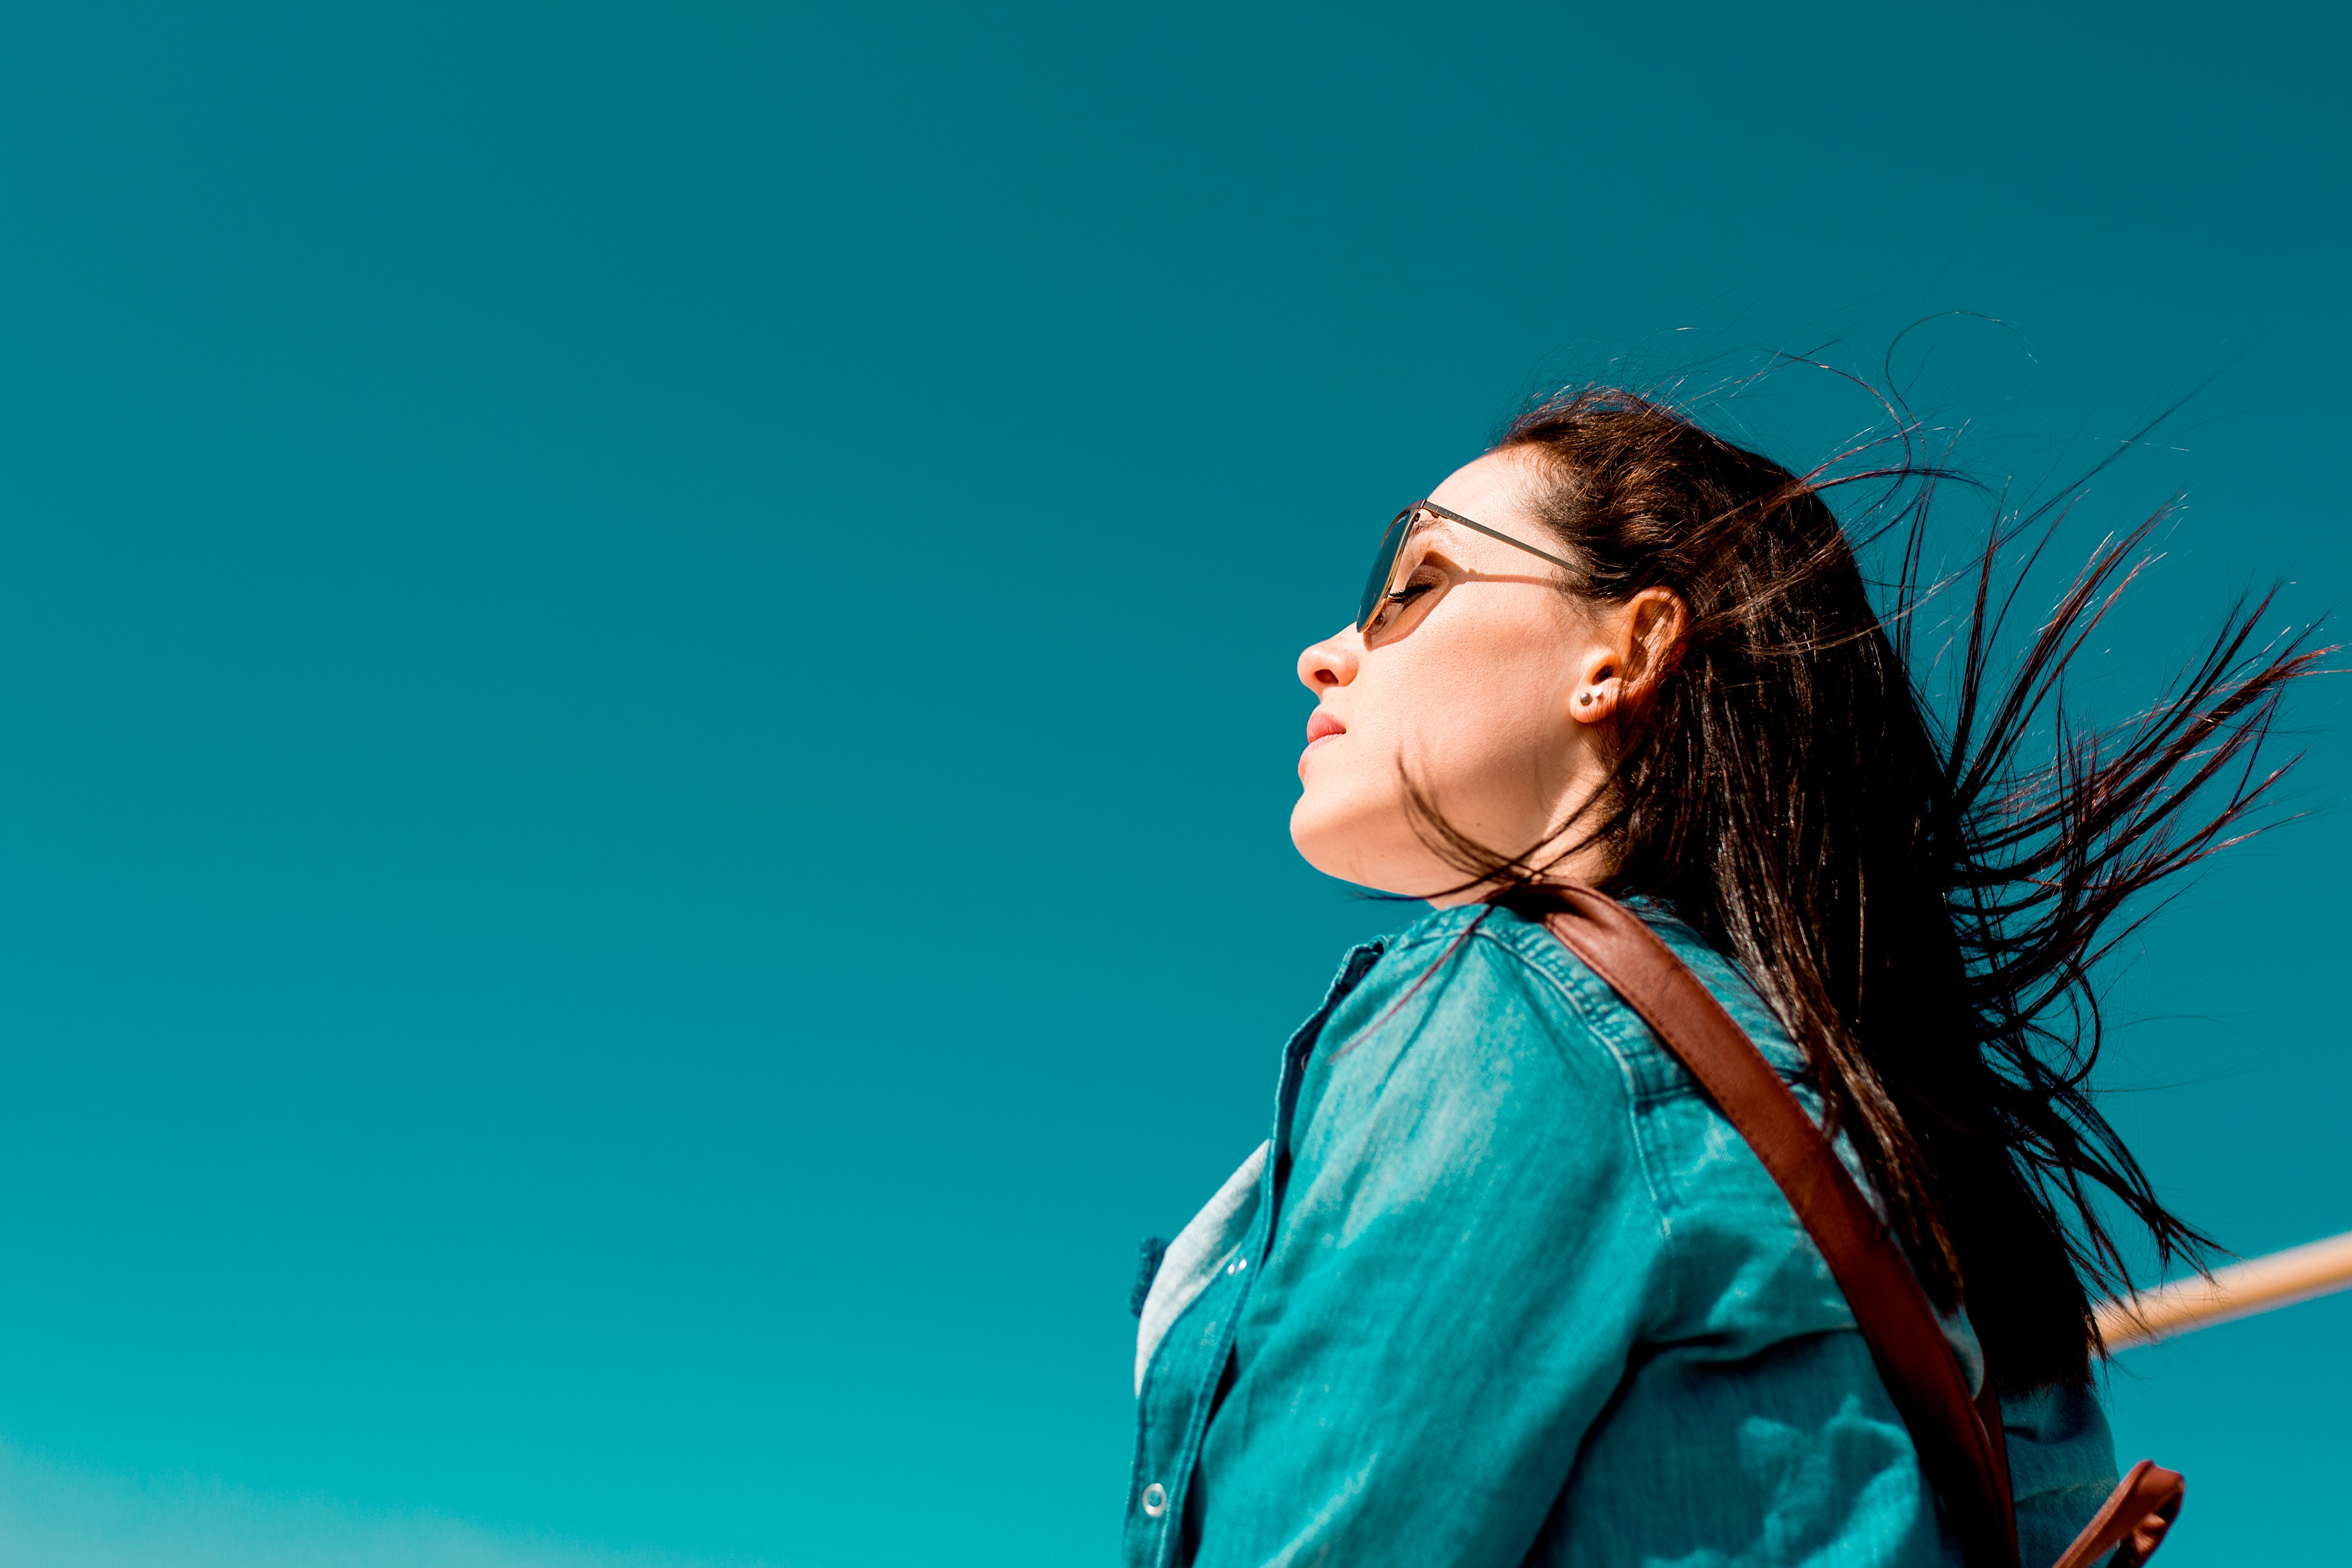 Woman wearing sunglasses enjoying the breeze with the sky in background.